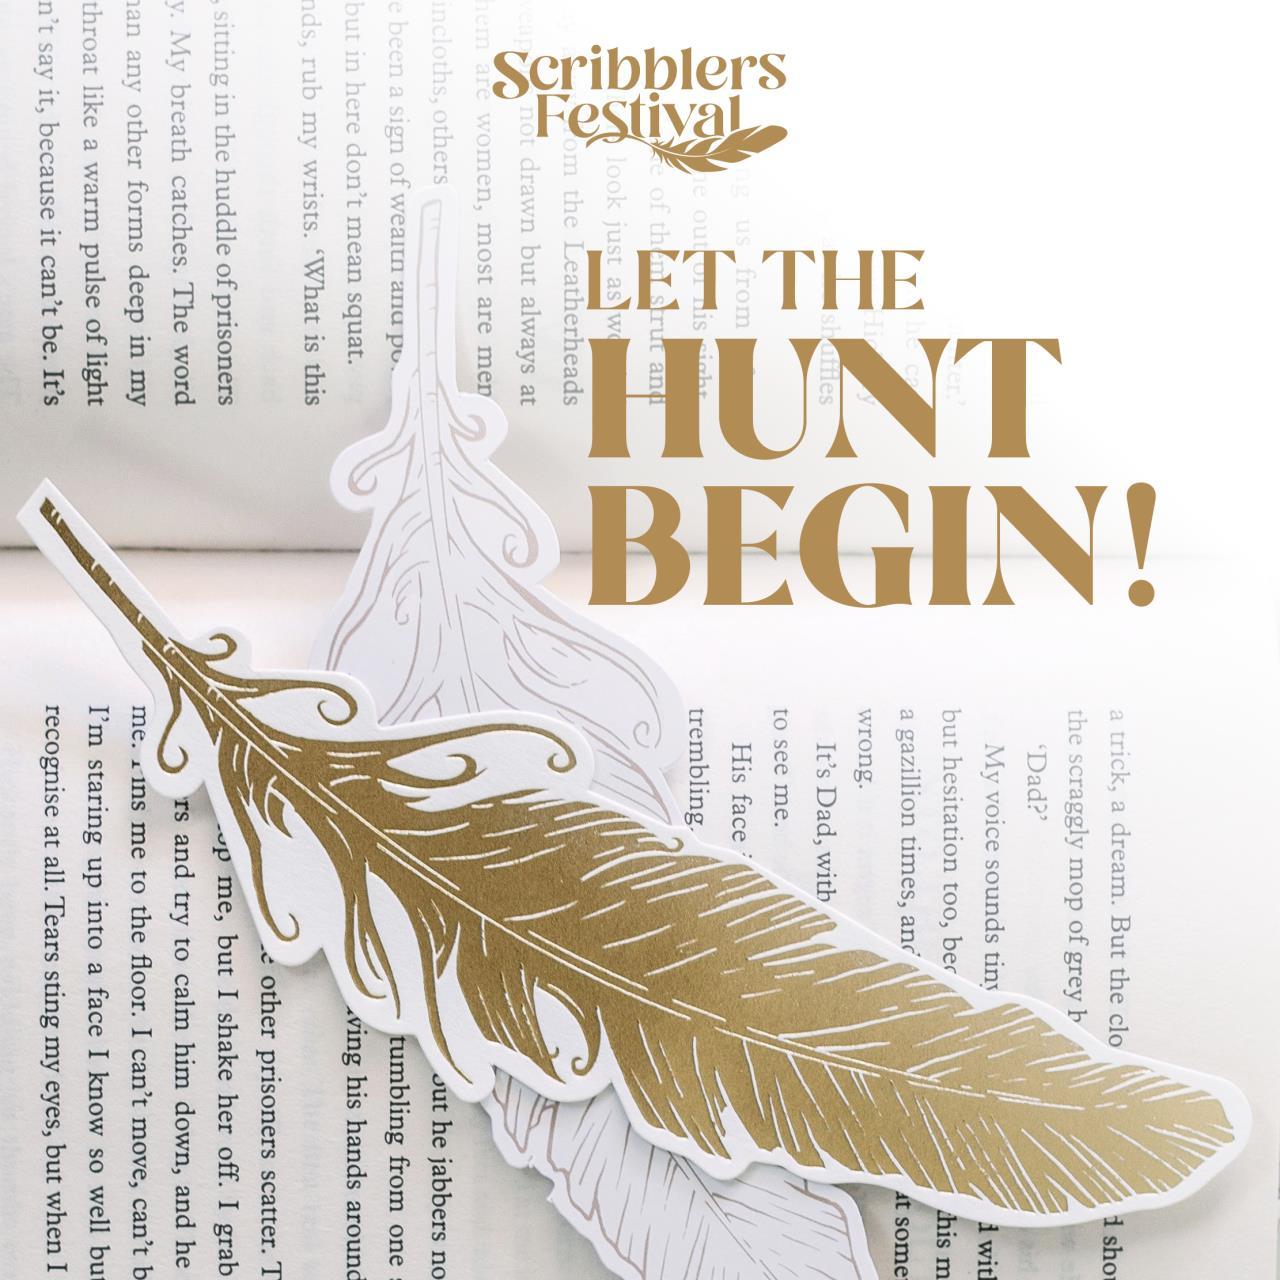 Scribblers Festival Golden Feather Hunt has begun!